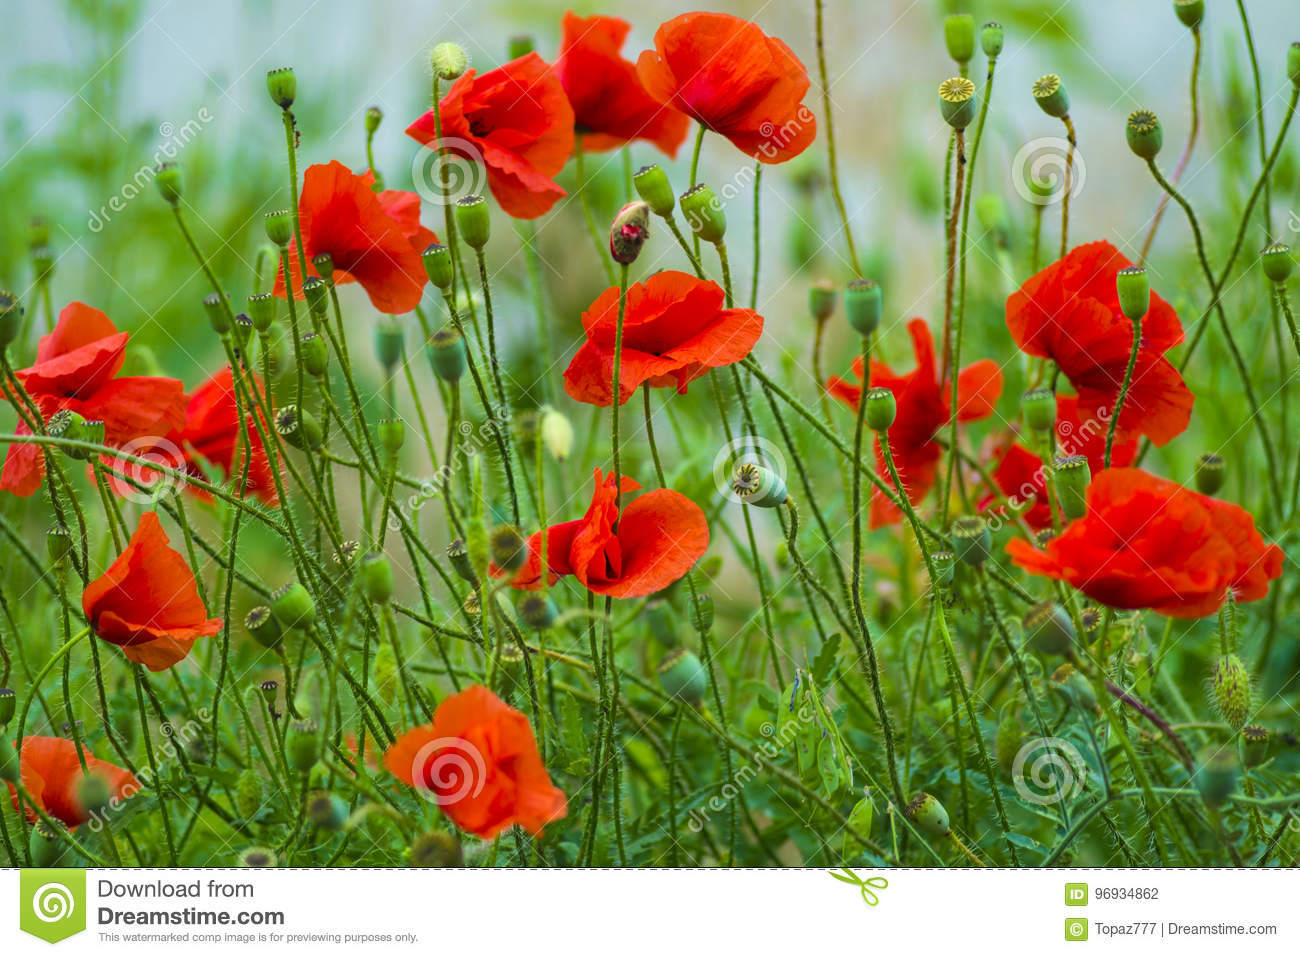 Poppy Red Poppy Flowers Red Poppies Blossom On Wild Field Bea